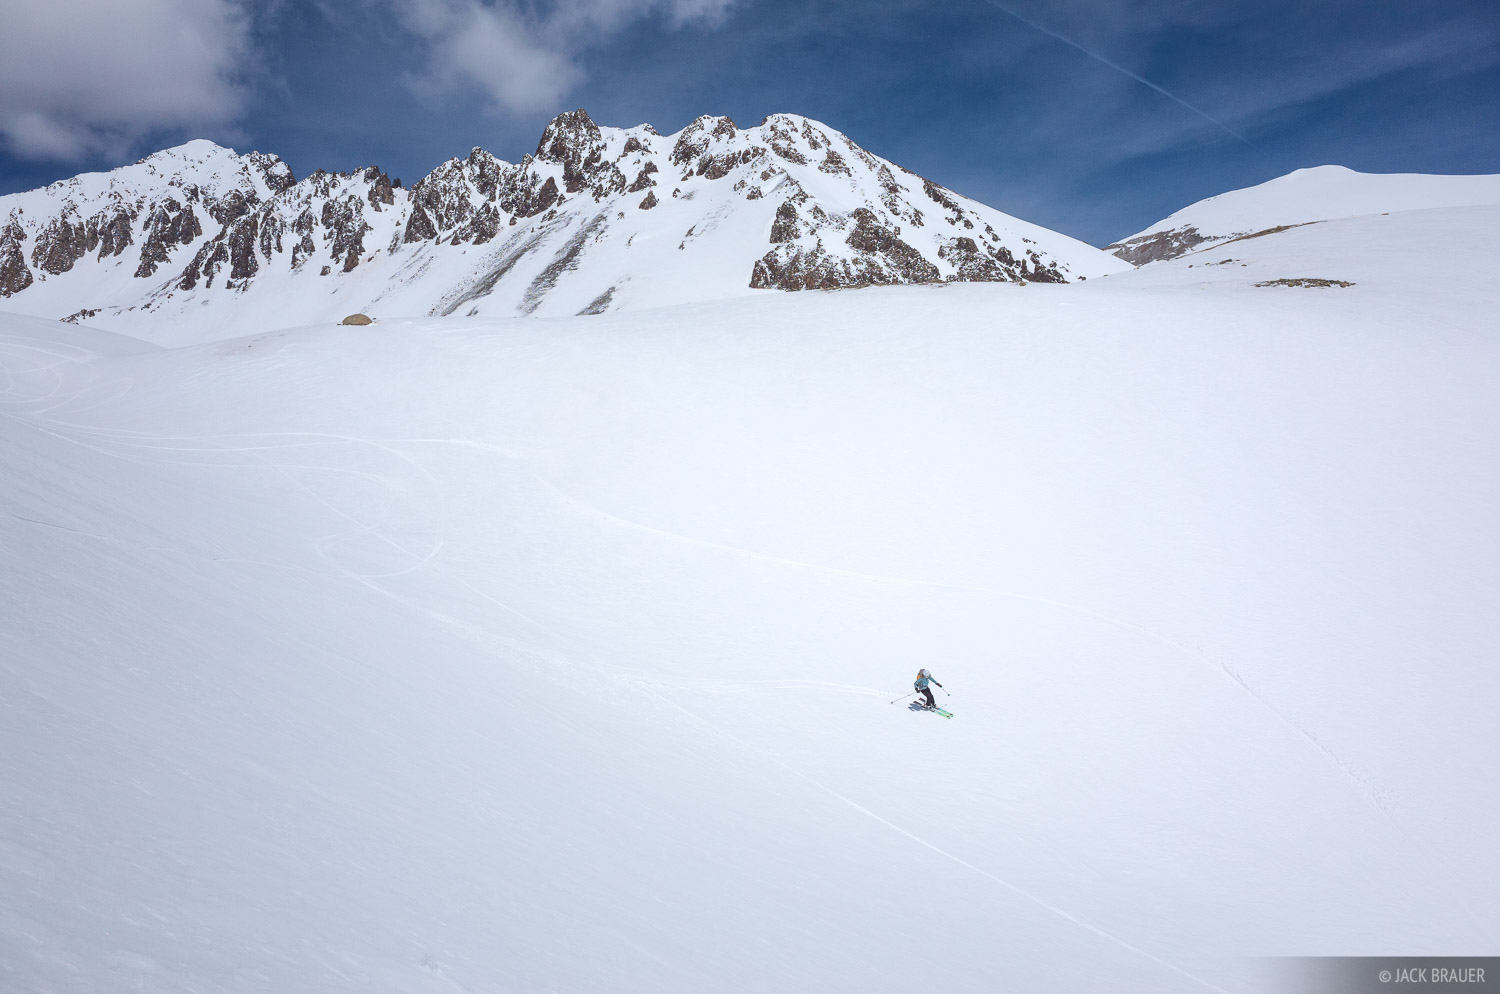 Colorado, San Juan Mountains, Sneffels Range, skiing, photo